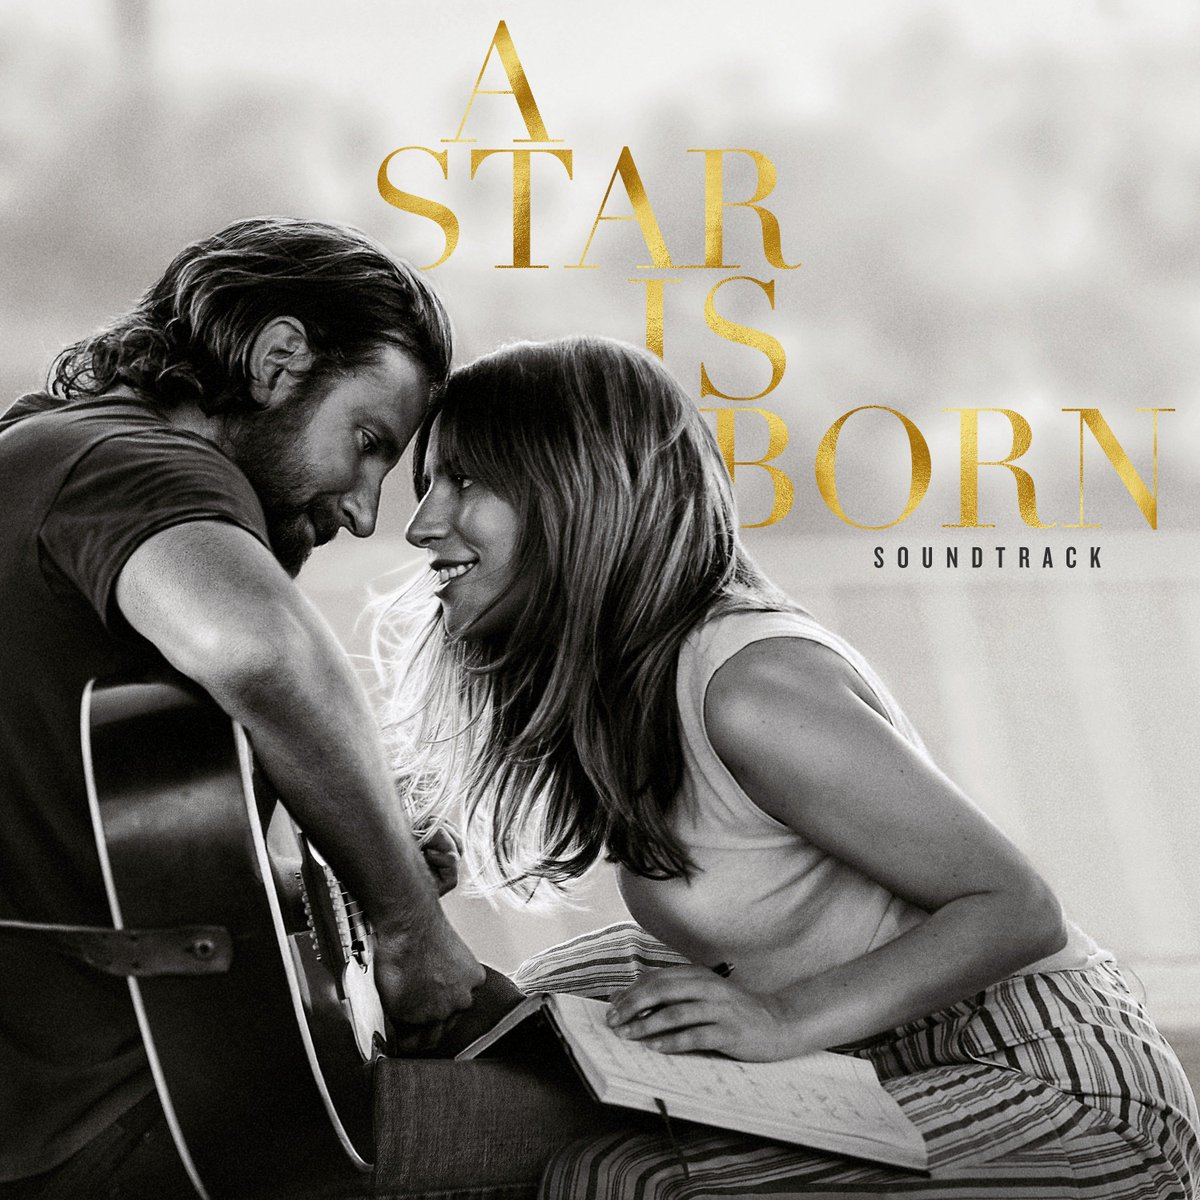 Get the #AStarIsBorn  Soundtrack for $3.99 on @amazonmusic .  http://smarturl.it/ASIBSoundtrack/amazonunlimited  …